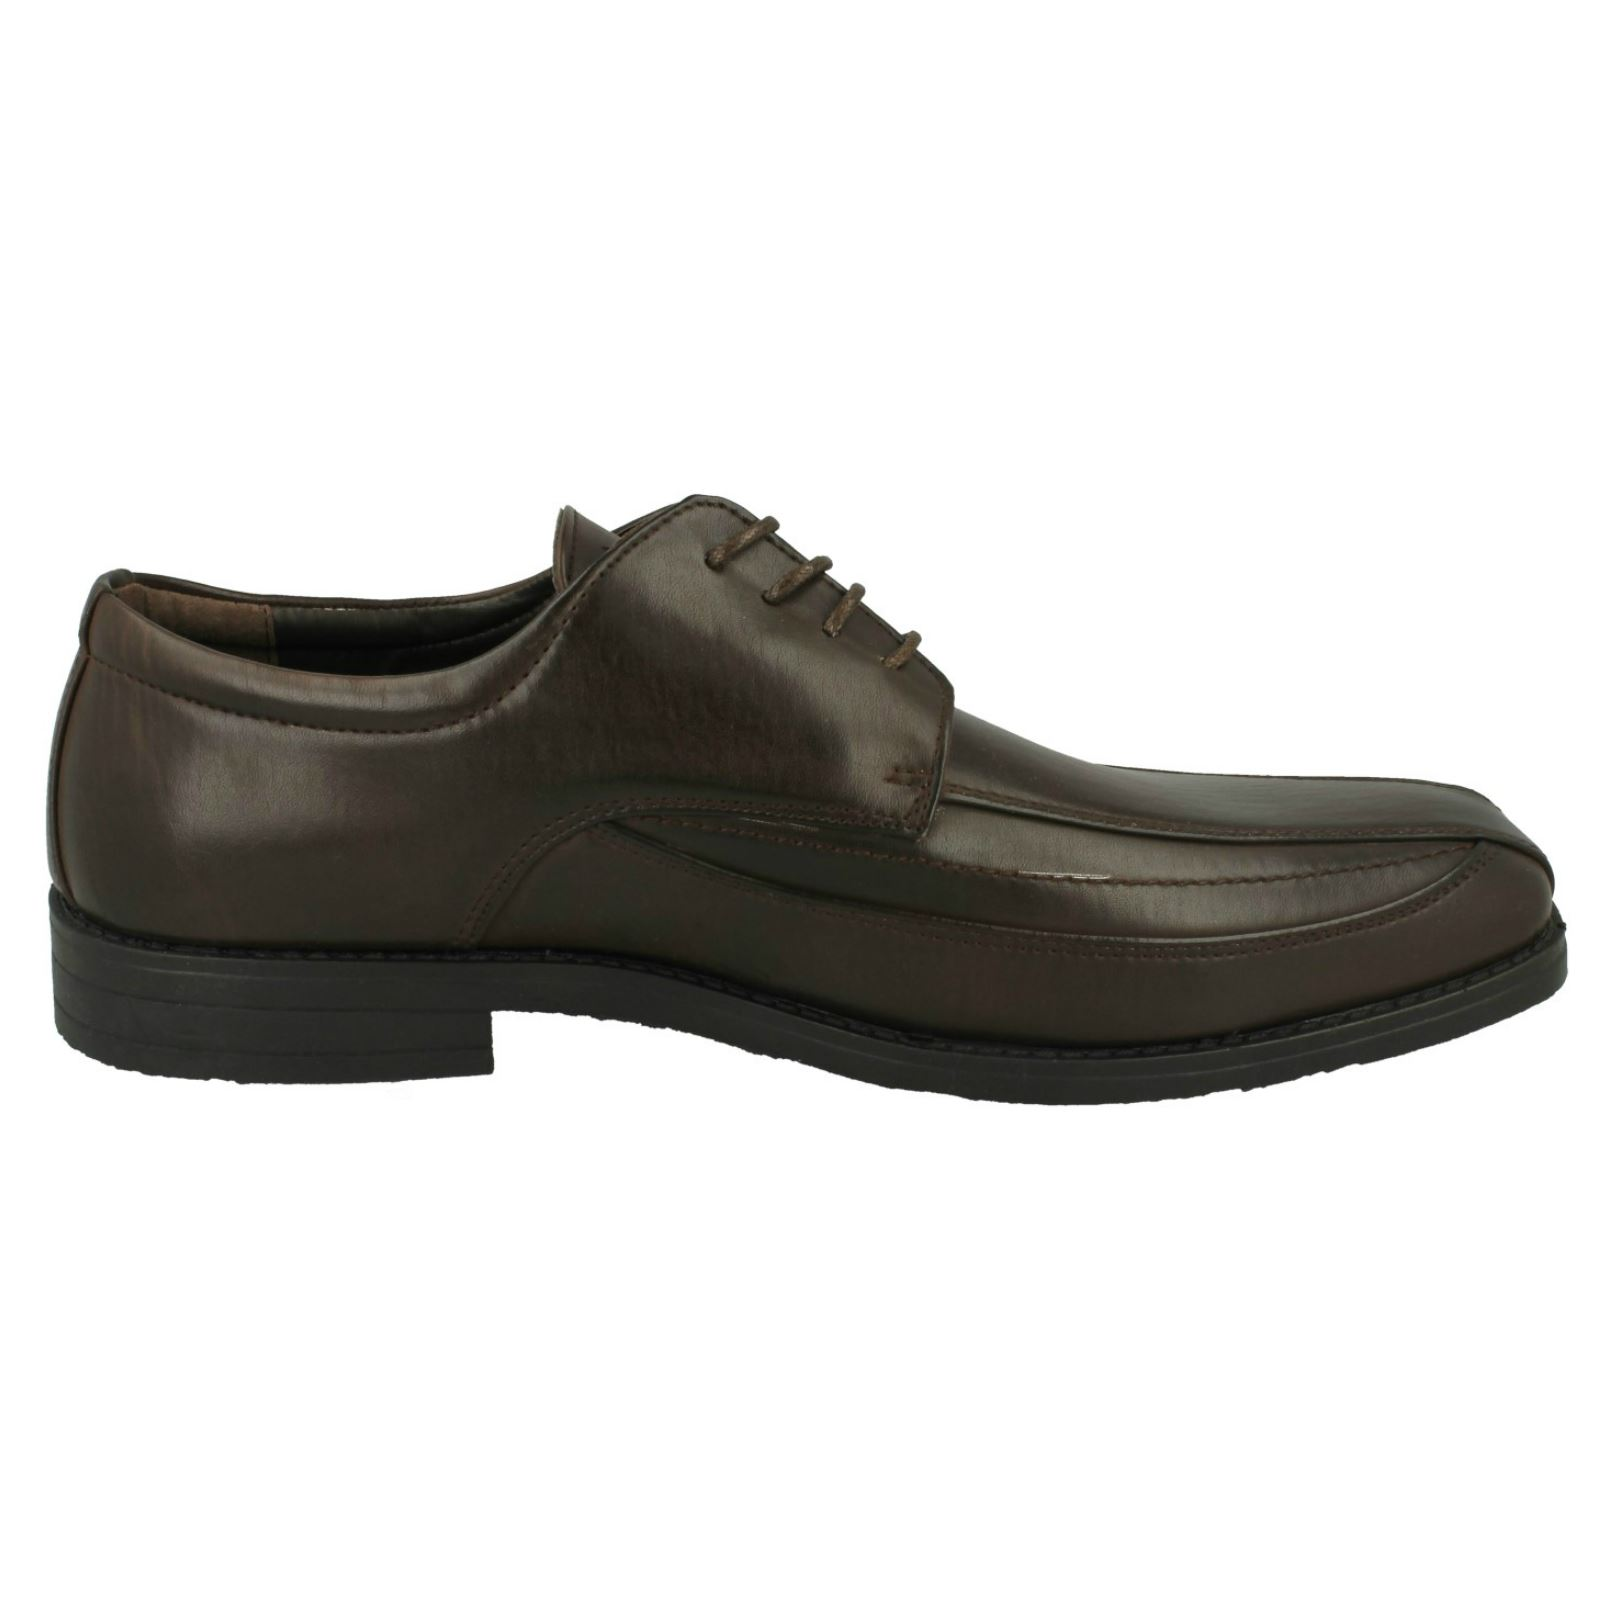 Mens Malvern Squared Toe Formal Heeled Lace Up Synthetic Shoes A2103